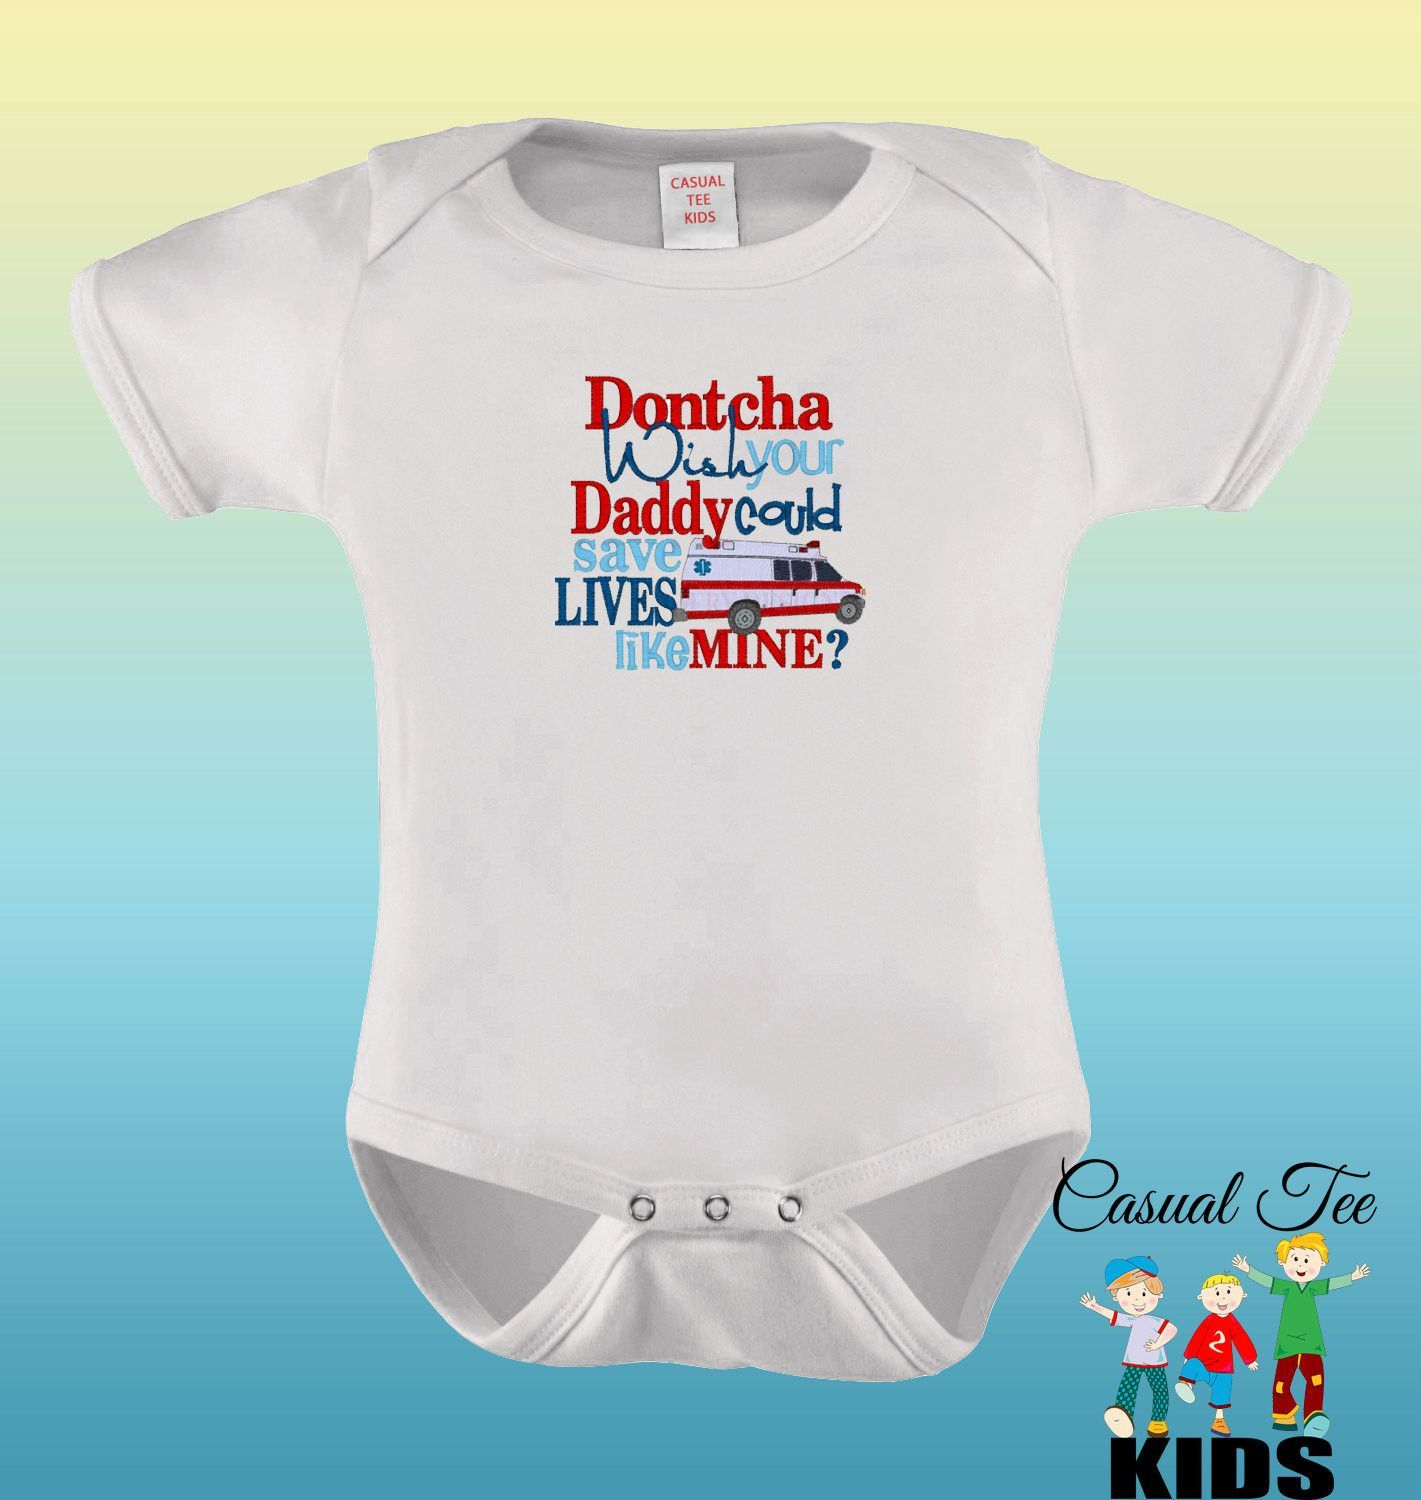 Dontcha Wish Your Daddy Could Save Lives Like Mine? EMBROIDERED Baby Girl Baby Boy Gender Neutral Bodysuit or Toddler Tshirt